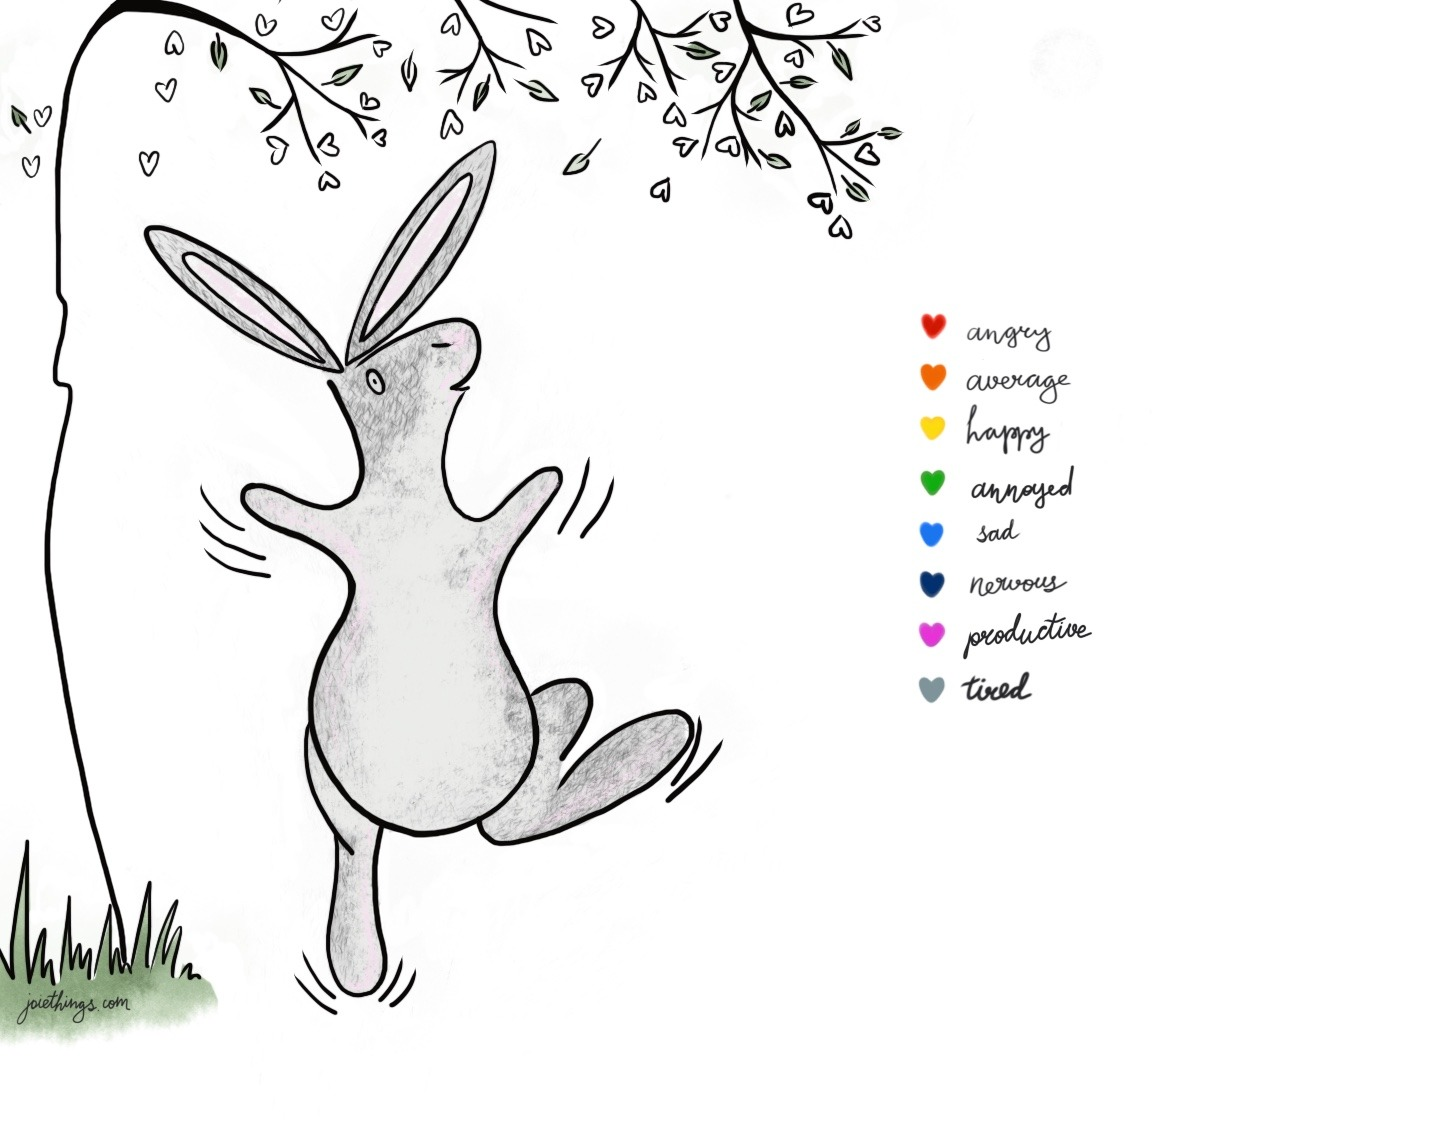 photograph about Printable Mood Tracker referred to as Printable bunny temper tracker - joiethings